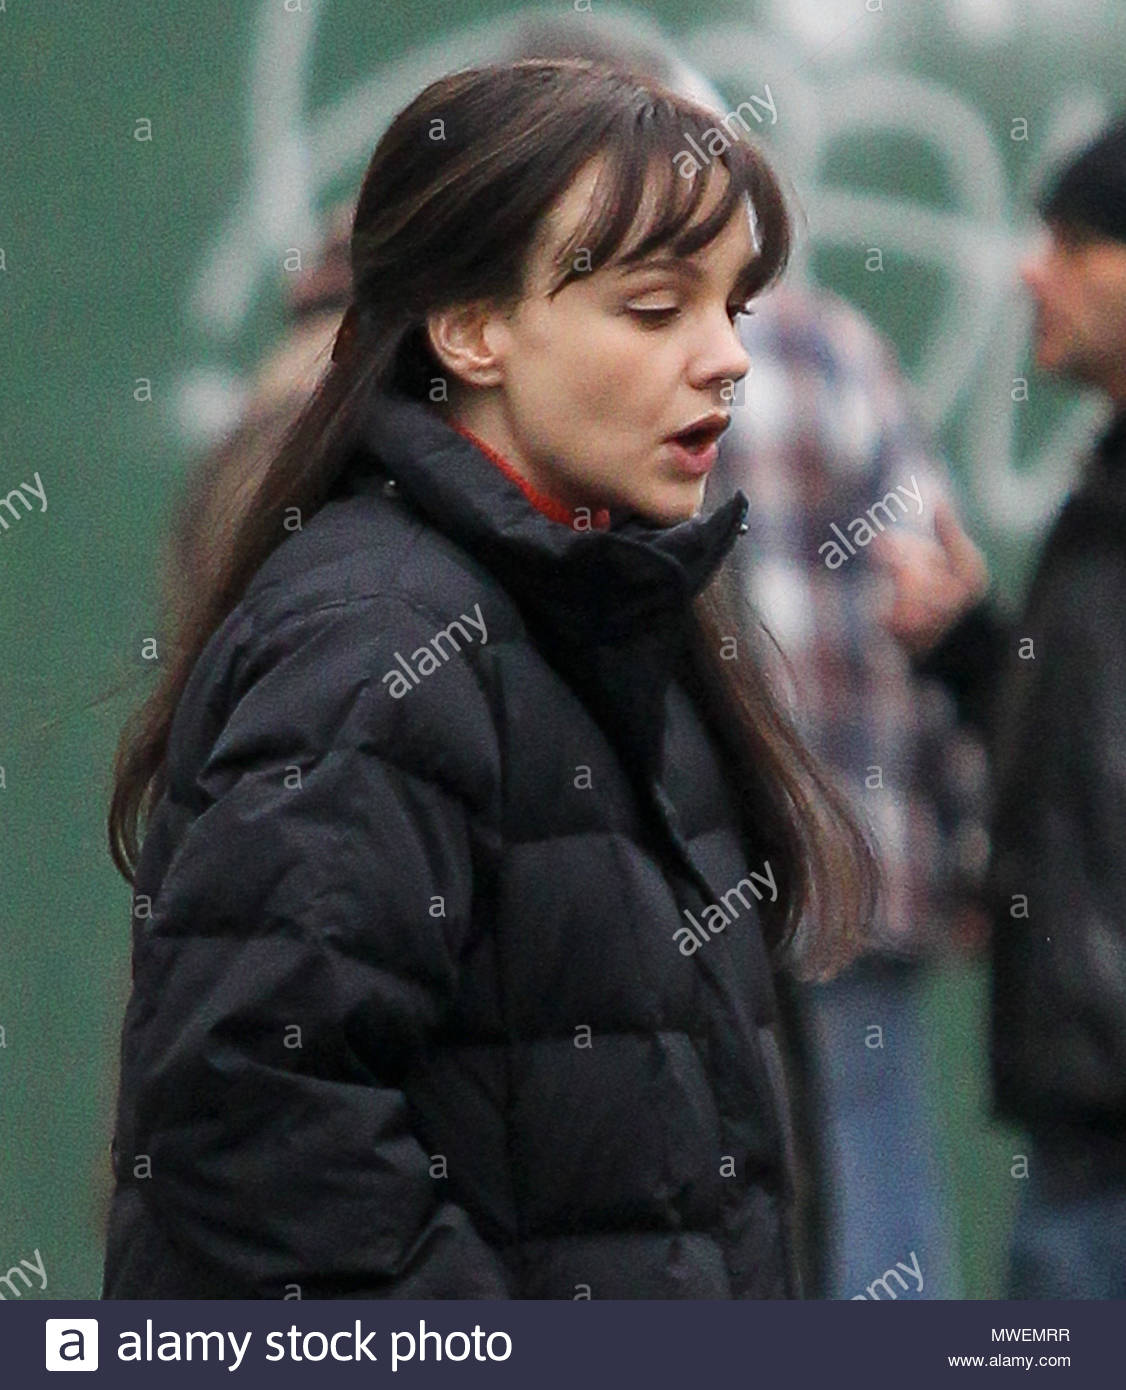 Carey Mulligan Carey Mulligan Seen Going To The Movie Set Inside